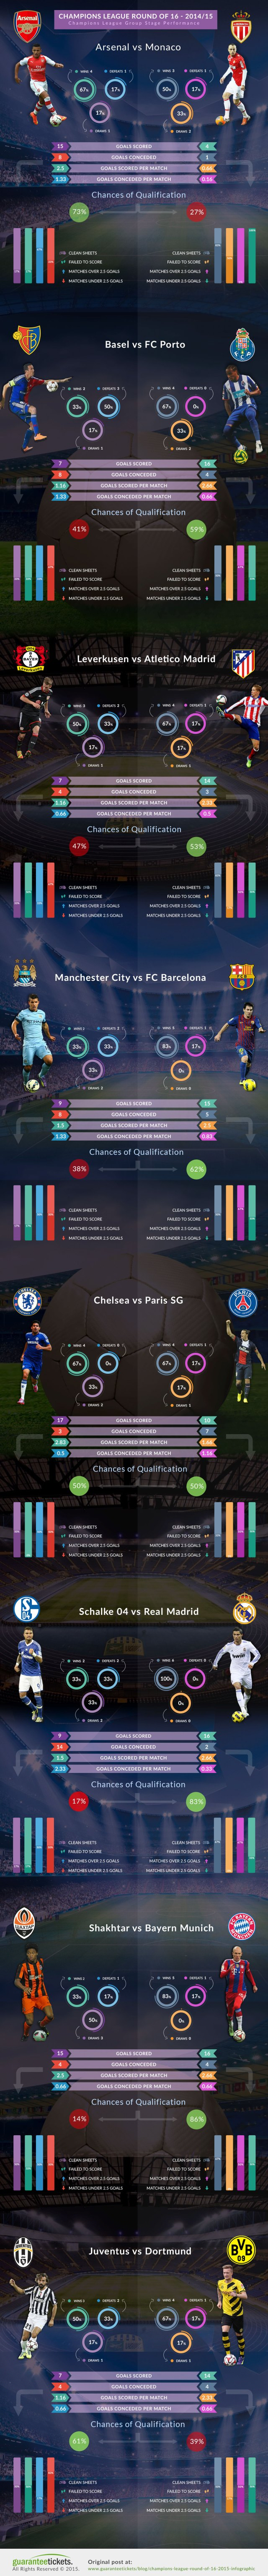 Champions League 2015 infographic